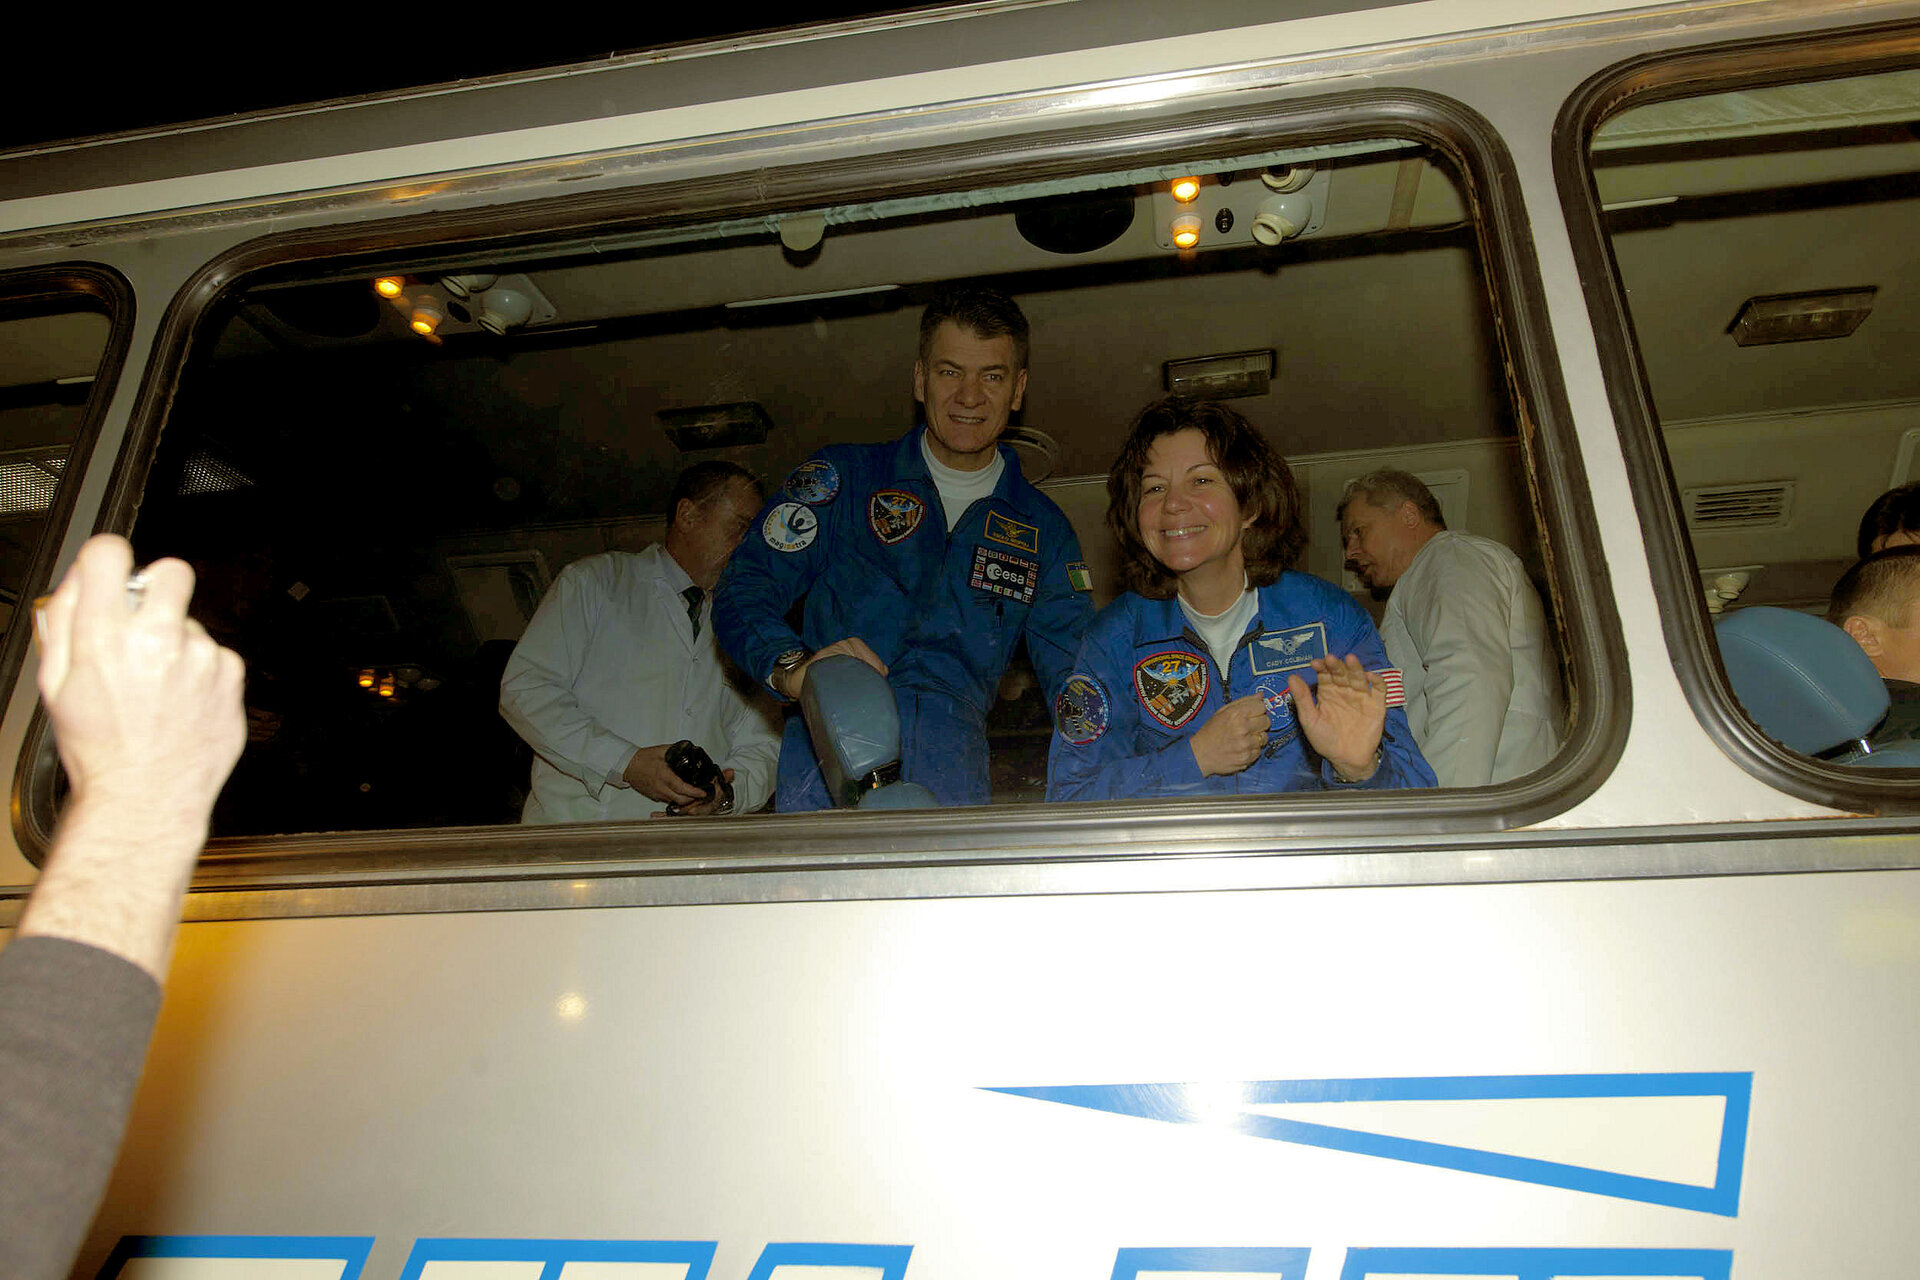 TMA-20 crew leaving the Cosmonaut Hotel